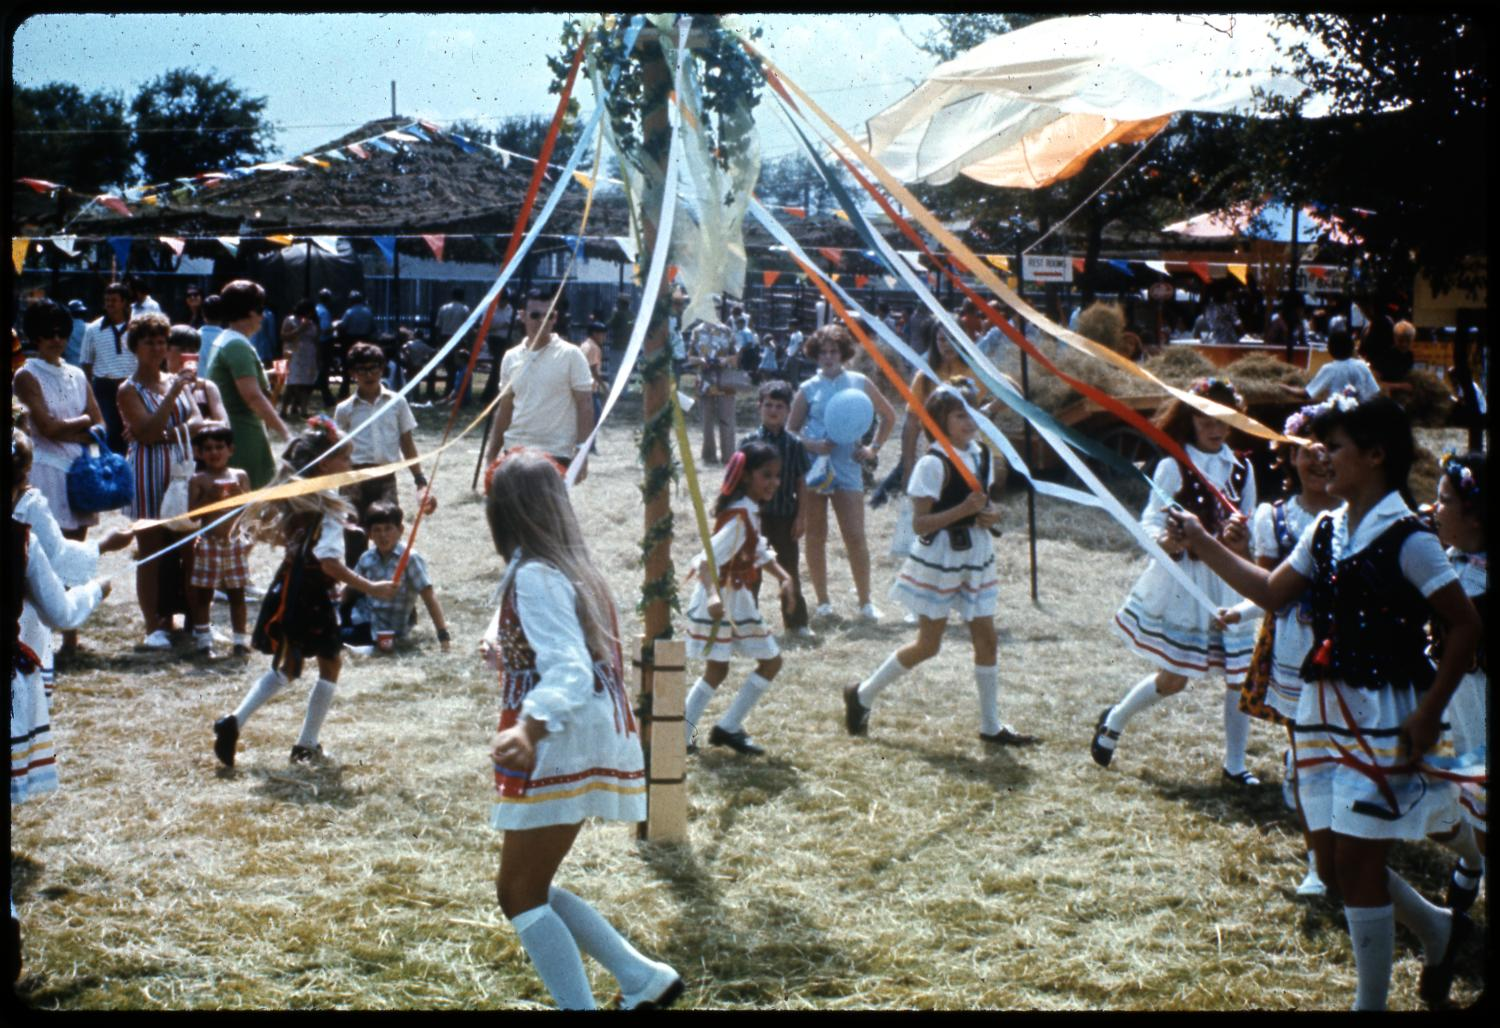 [Polish Children Dancing Around the Maypole], Photograph of Polish children dancing around the maypole at the Texas Folklife Festival. The Maypole is erected outdoors in a grassy clearing. It is decorated with leafy garland spiraling up to the top where red, white and blue flowers are displayed. Colored ribbons stream from the top of the pole down to the hands of the children running clockwise around the pole. All of the children are girls, wearing white knee-high socks and white dresses with horizontal colored stripes near the hem. Over their dresses they are wearing red, black or blue vests embroidered with gold or silver decoration. Flowers or ribbons adorn each of their heads. In the background, a few spectators are visible, as are pennant flags and other festival booths.,